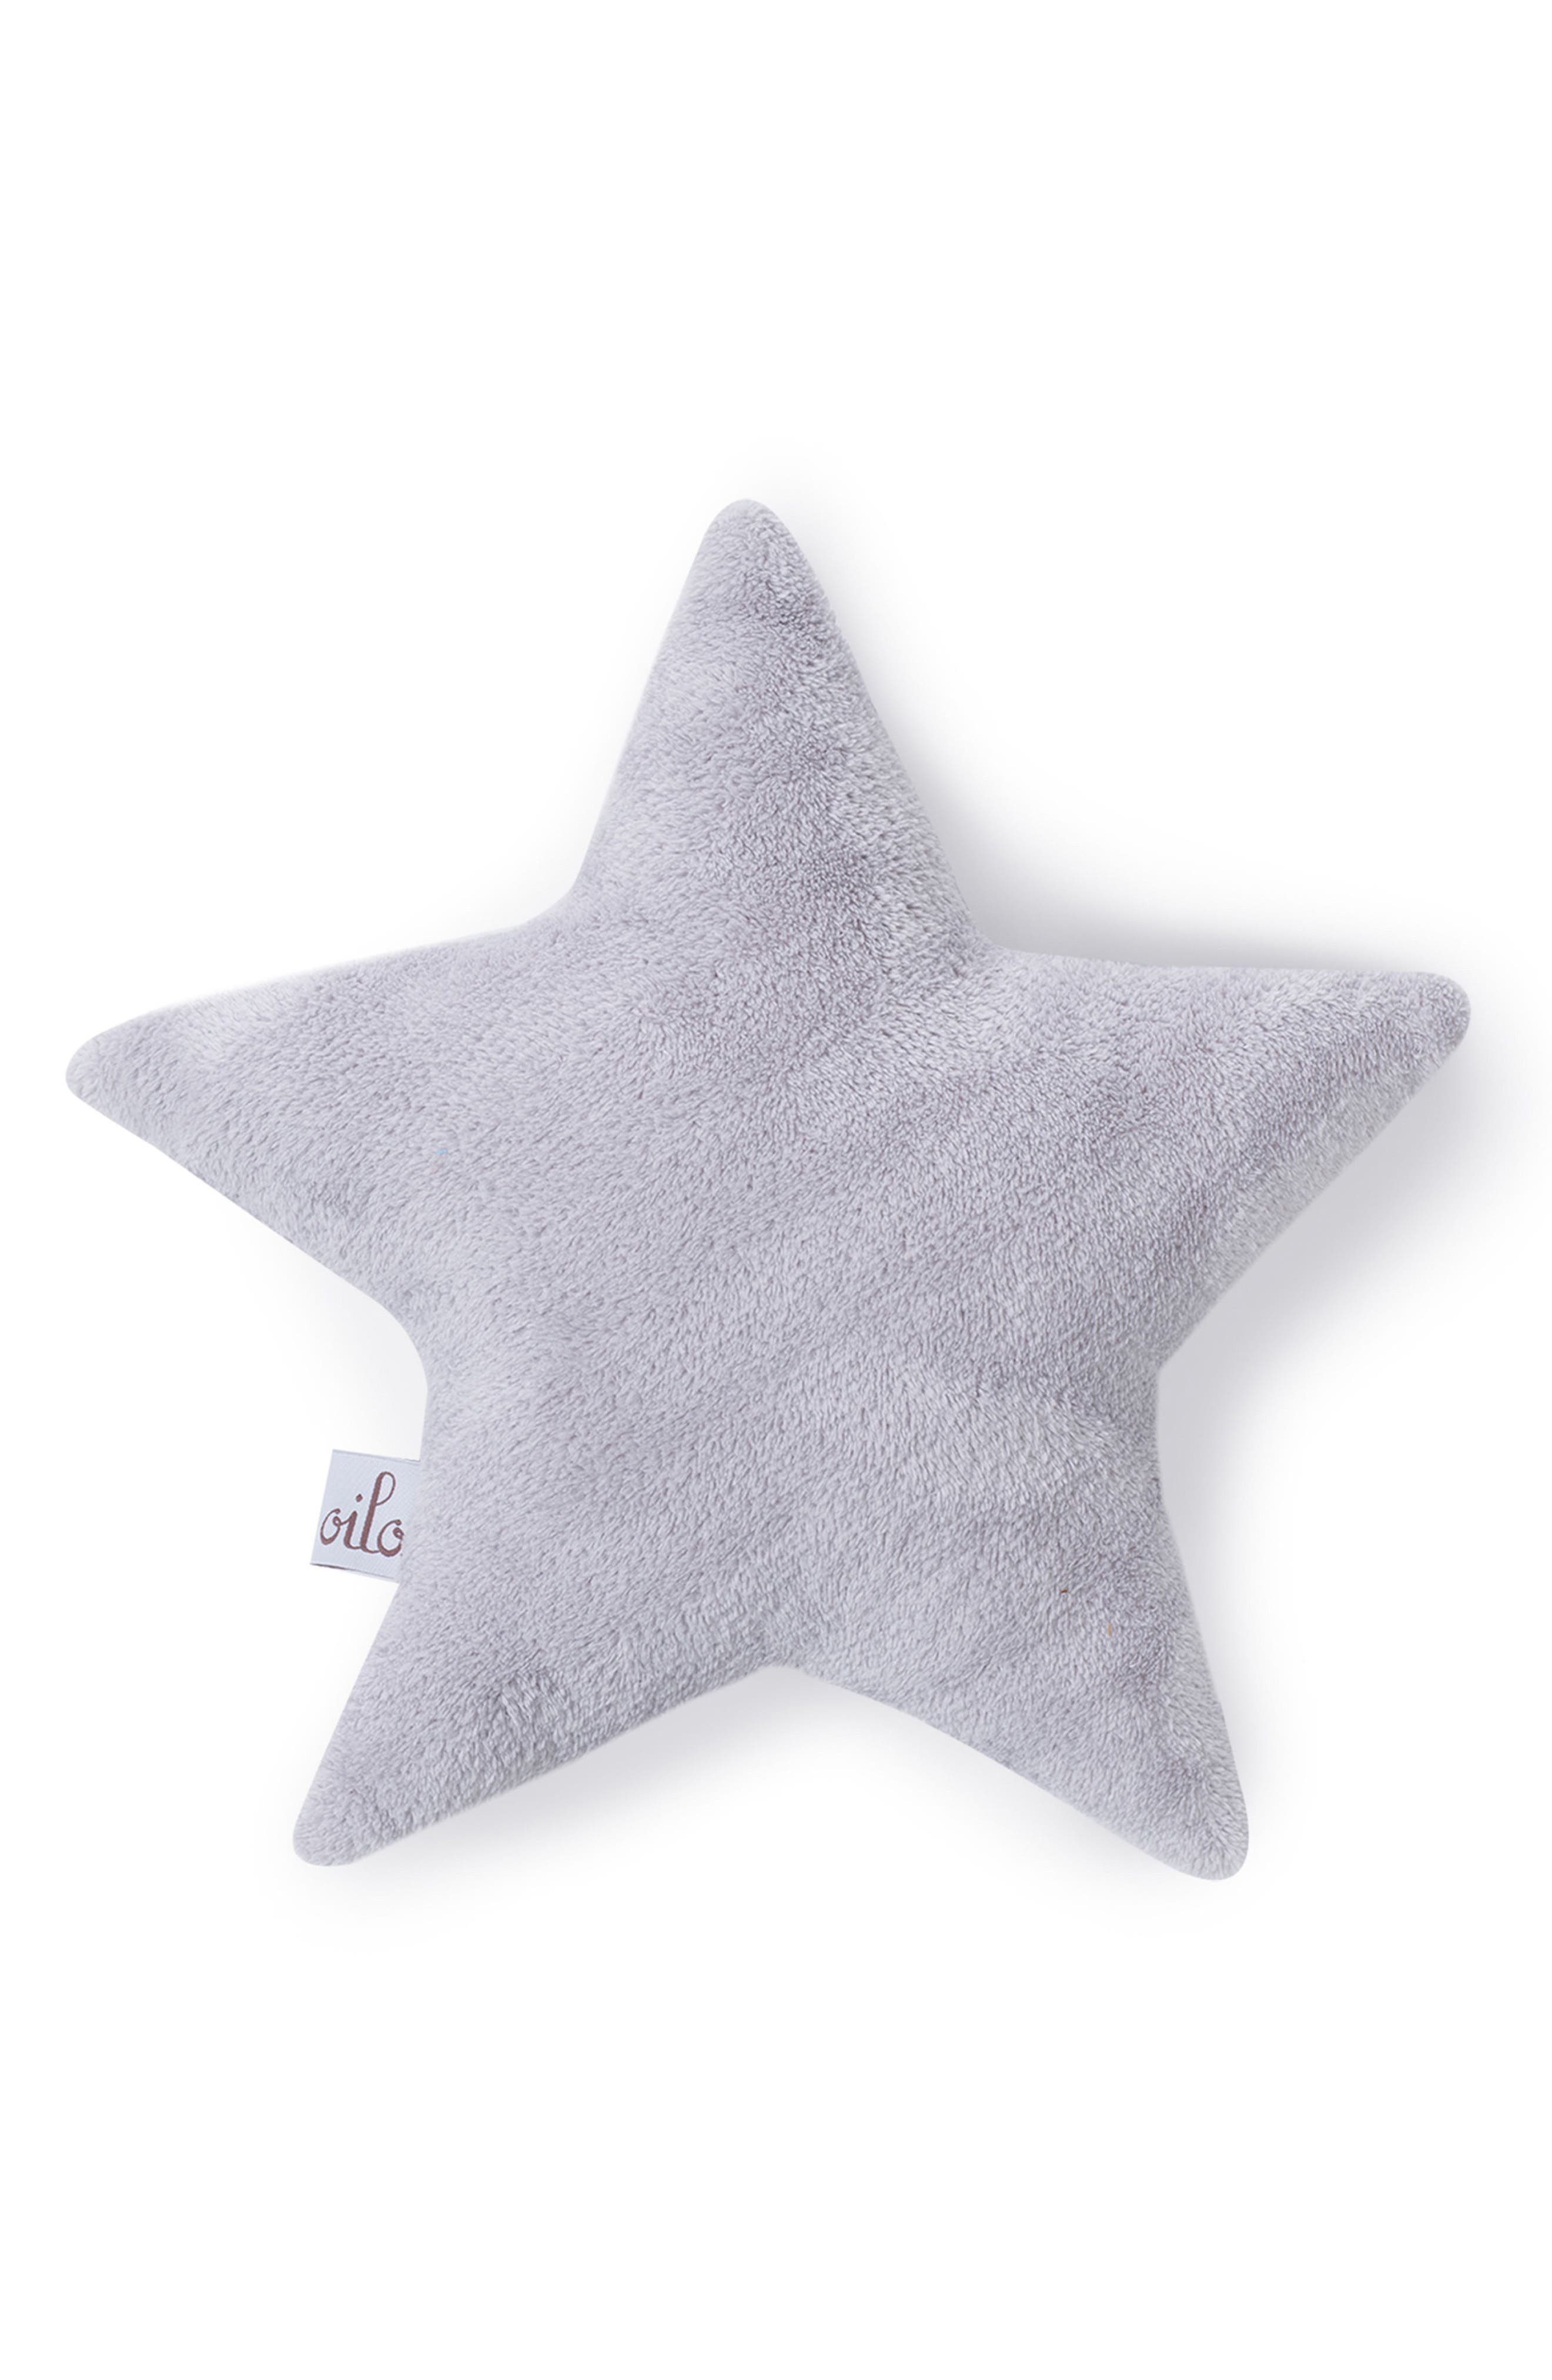 Fawn Cuddle Blanket & Star Pillow Set,                             Alternate thumbnail 2, color,                             FAWN